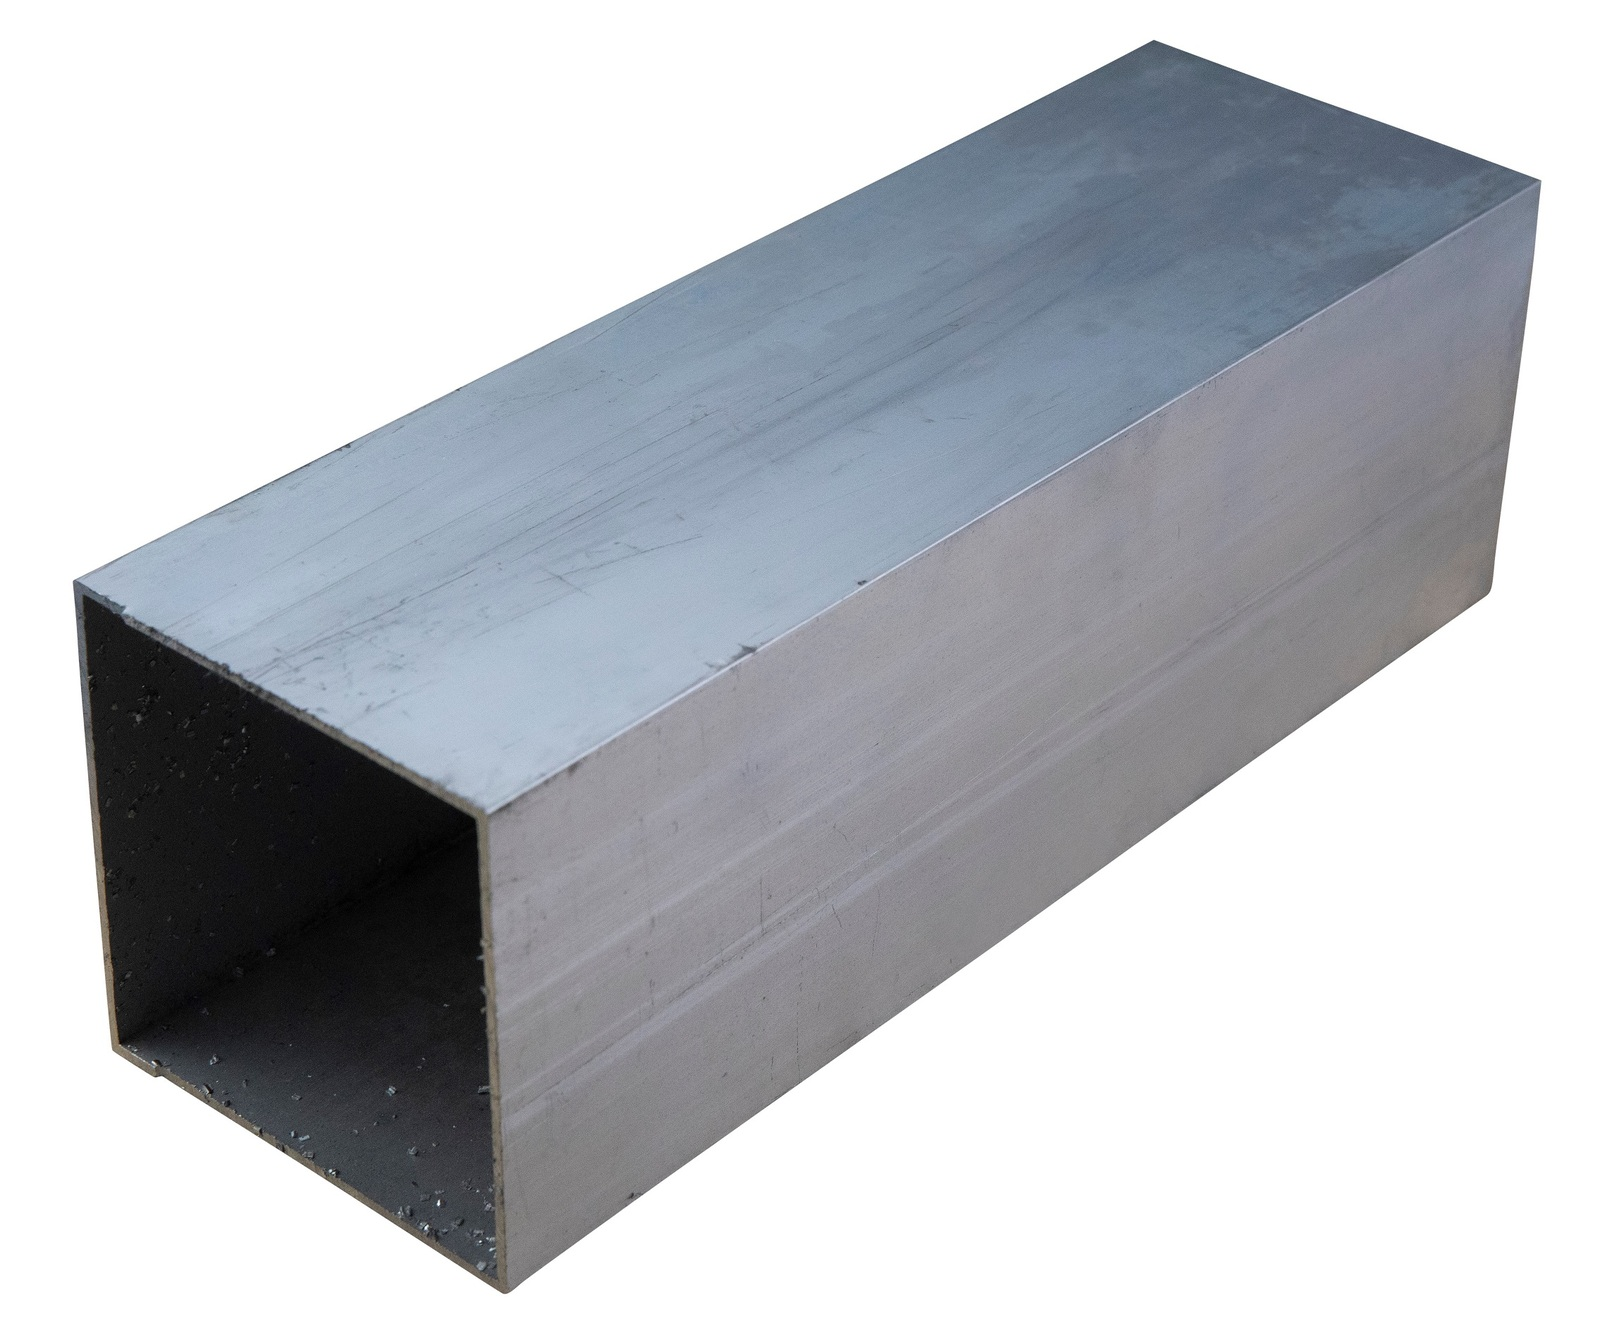 Post 100 x 100 x 6500 Aluminium 3.0mm Thick